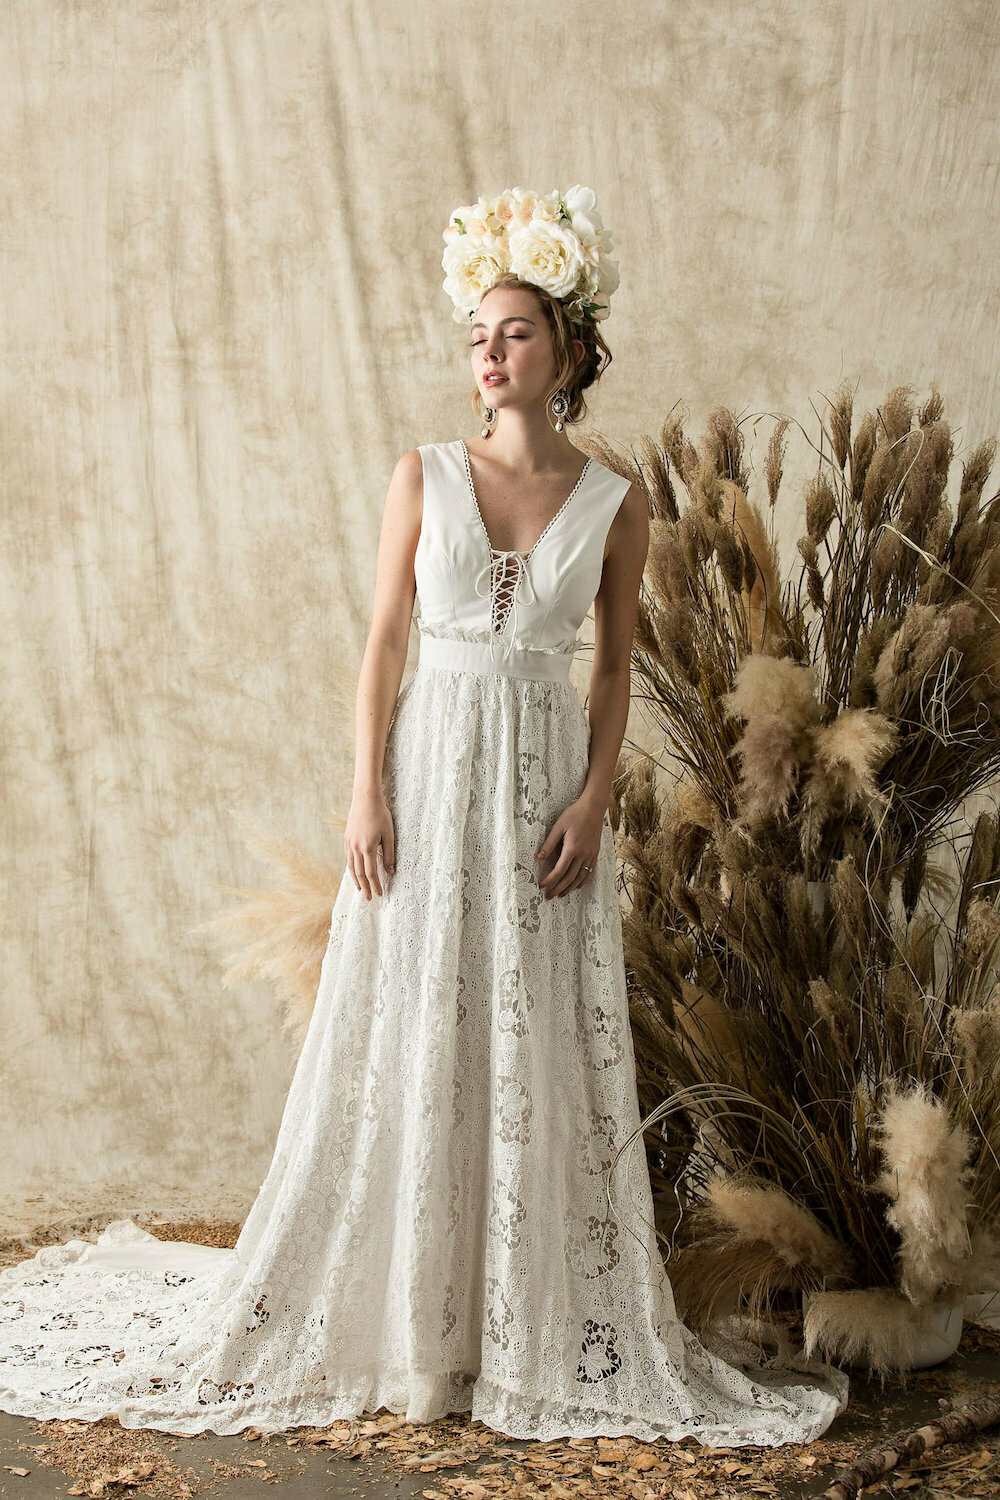 dreamers-and-lovers-silk-crochet-lace-gypsy-bohemian-wedding-dress-with-ruffle